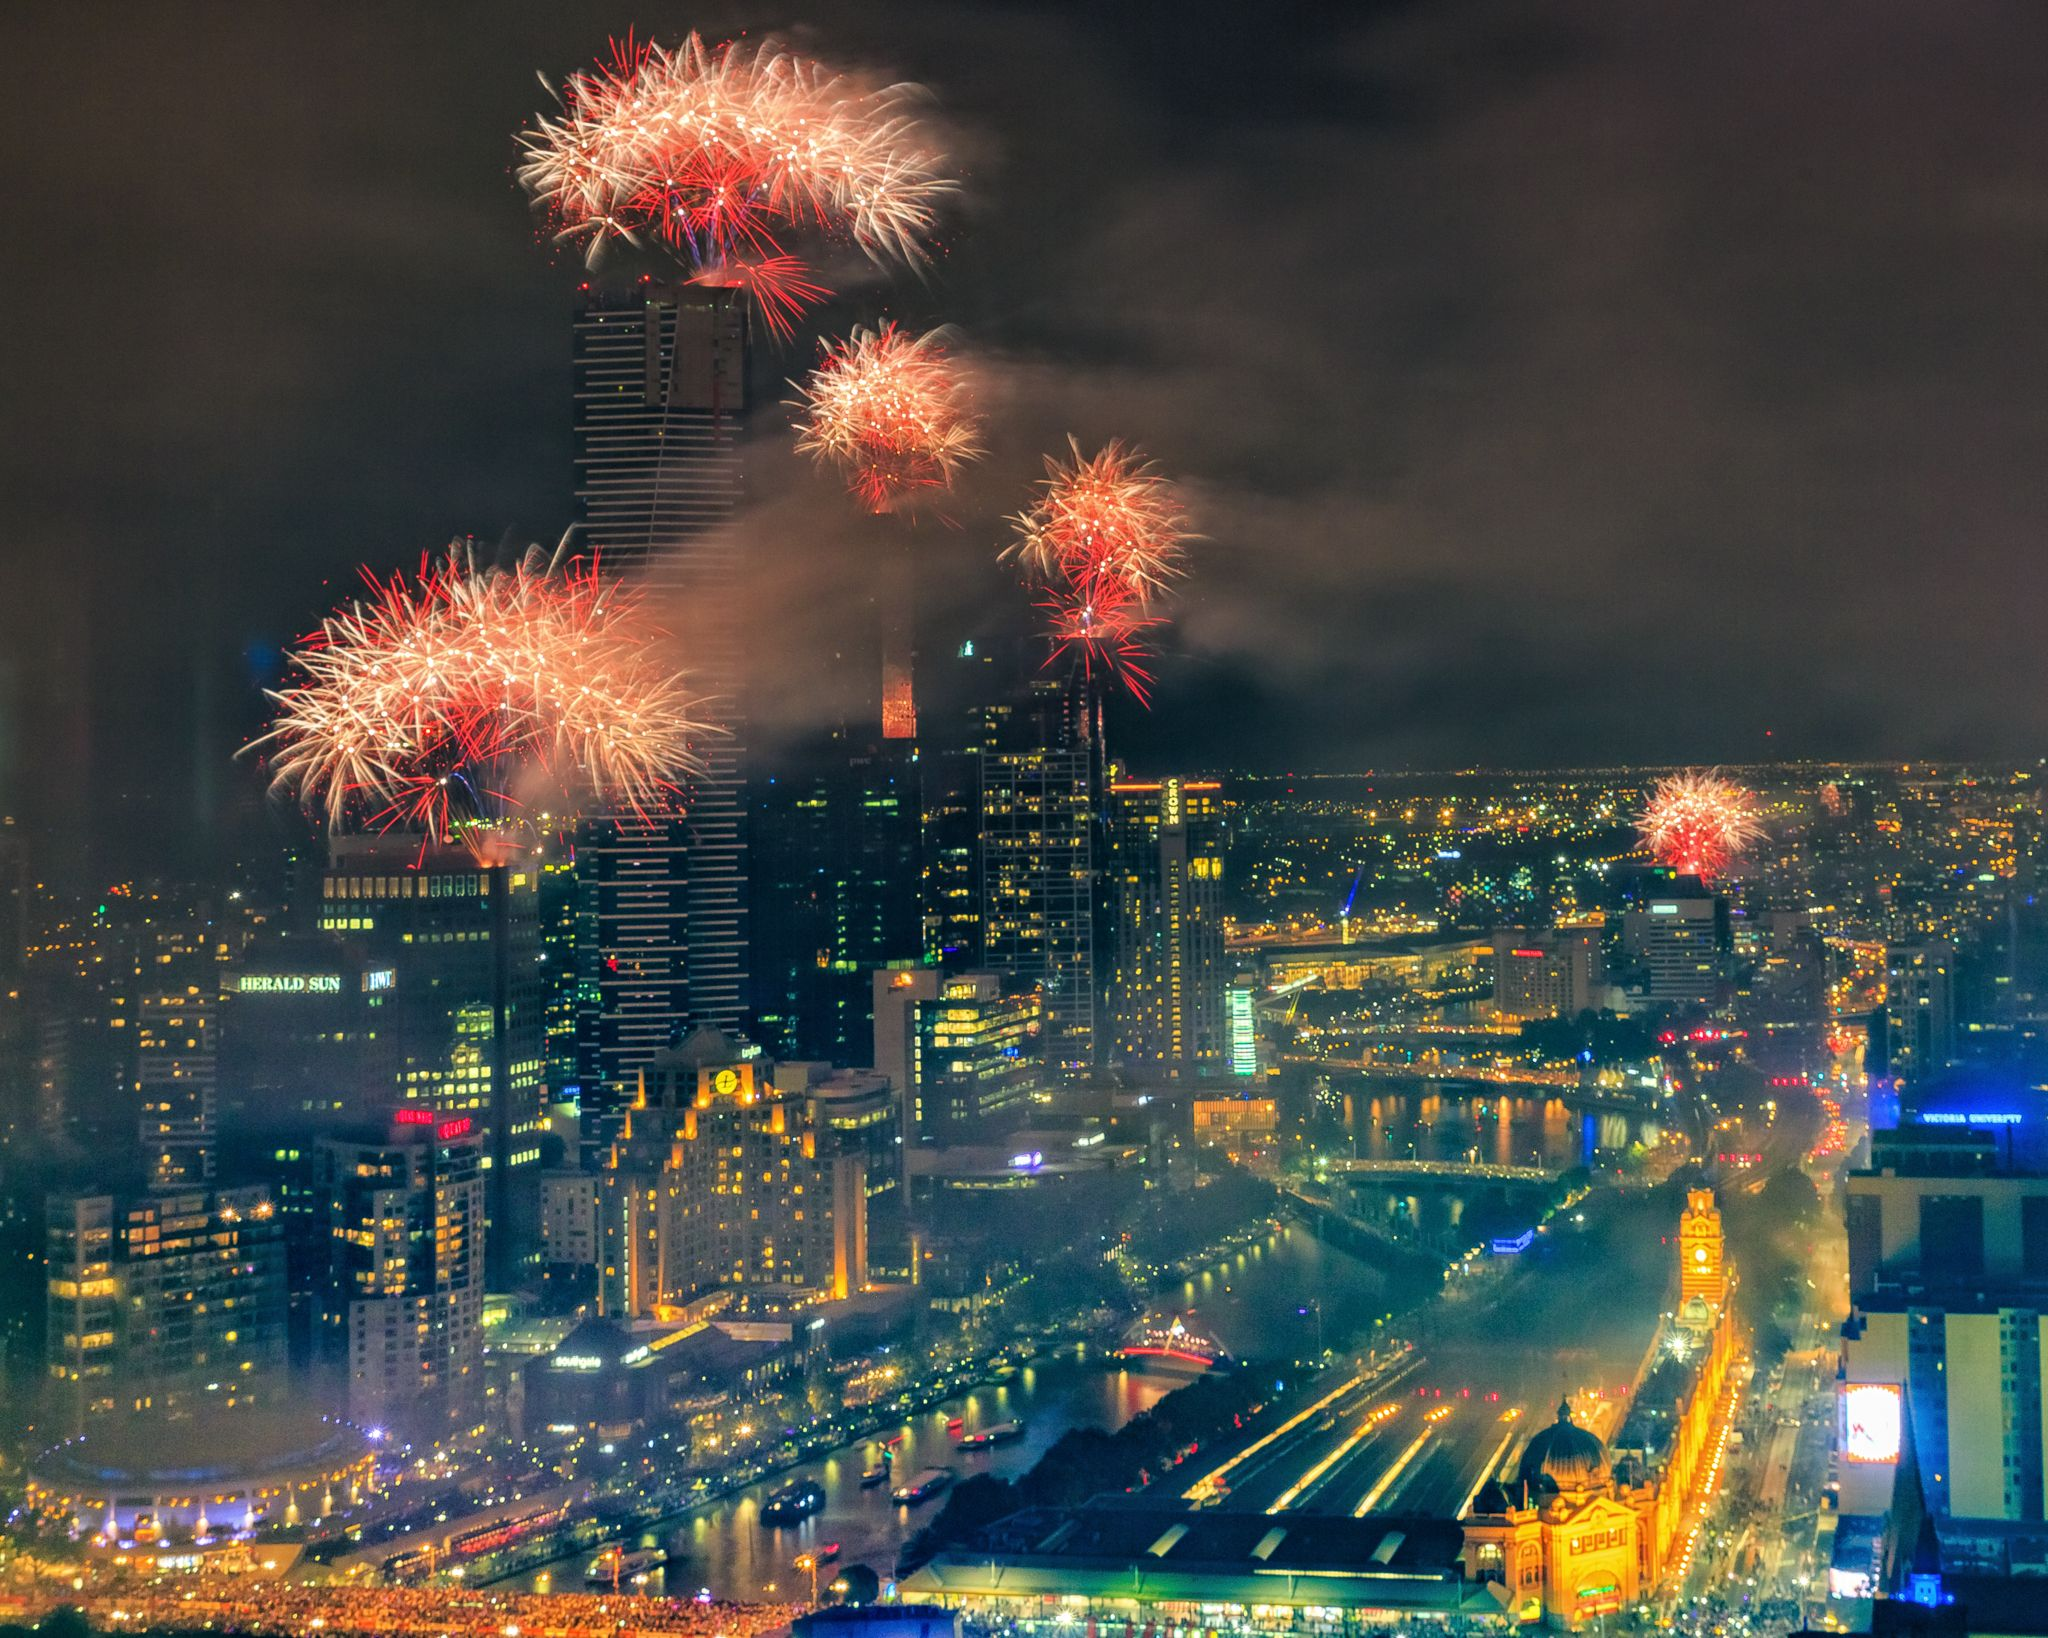 New Years Eve Melbourne taken from the 35th floor. Taken